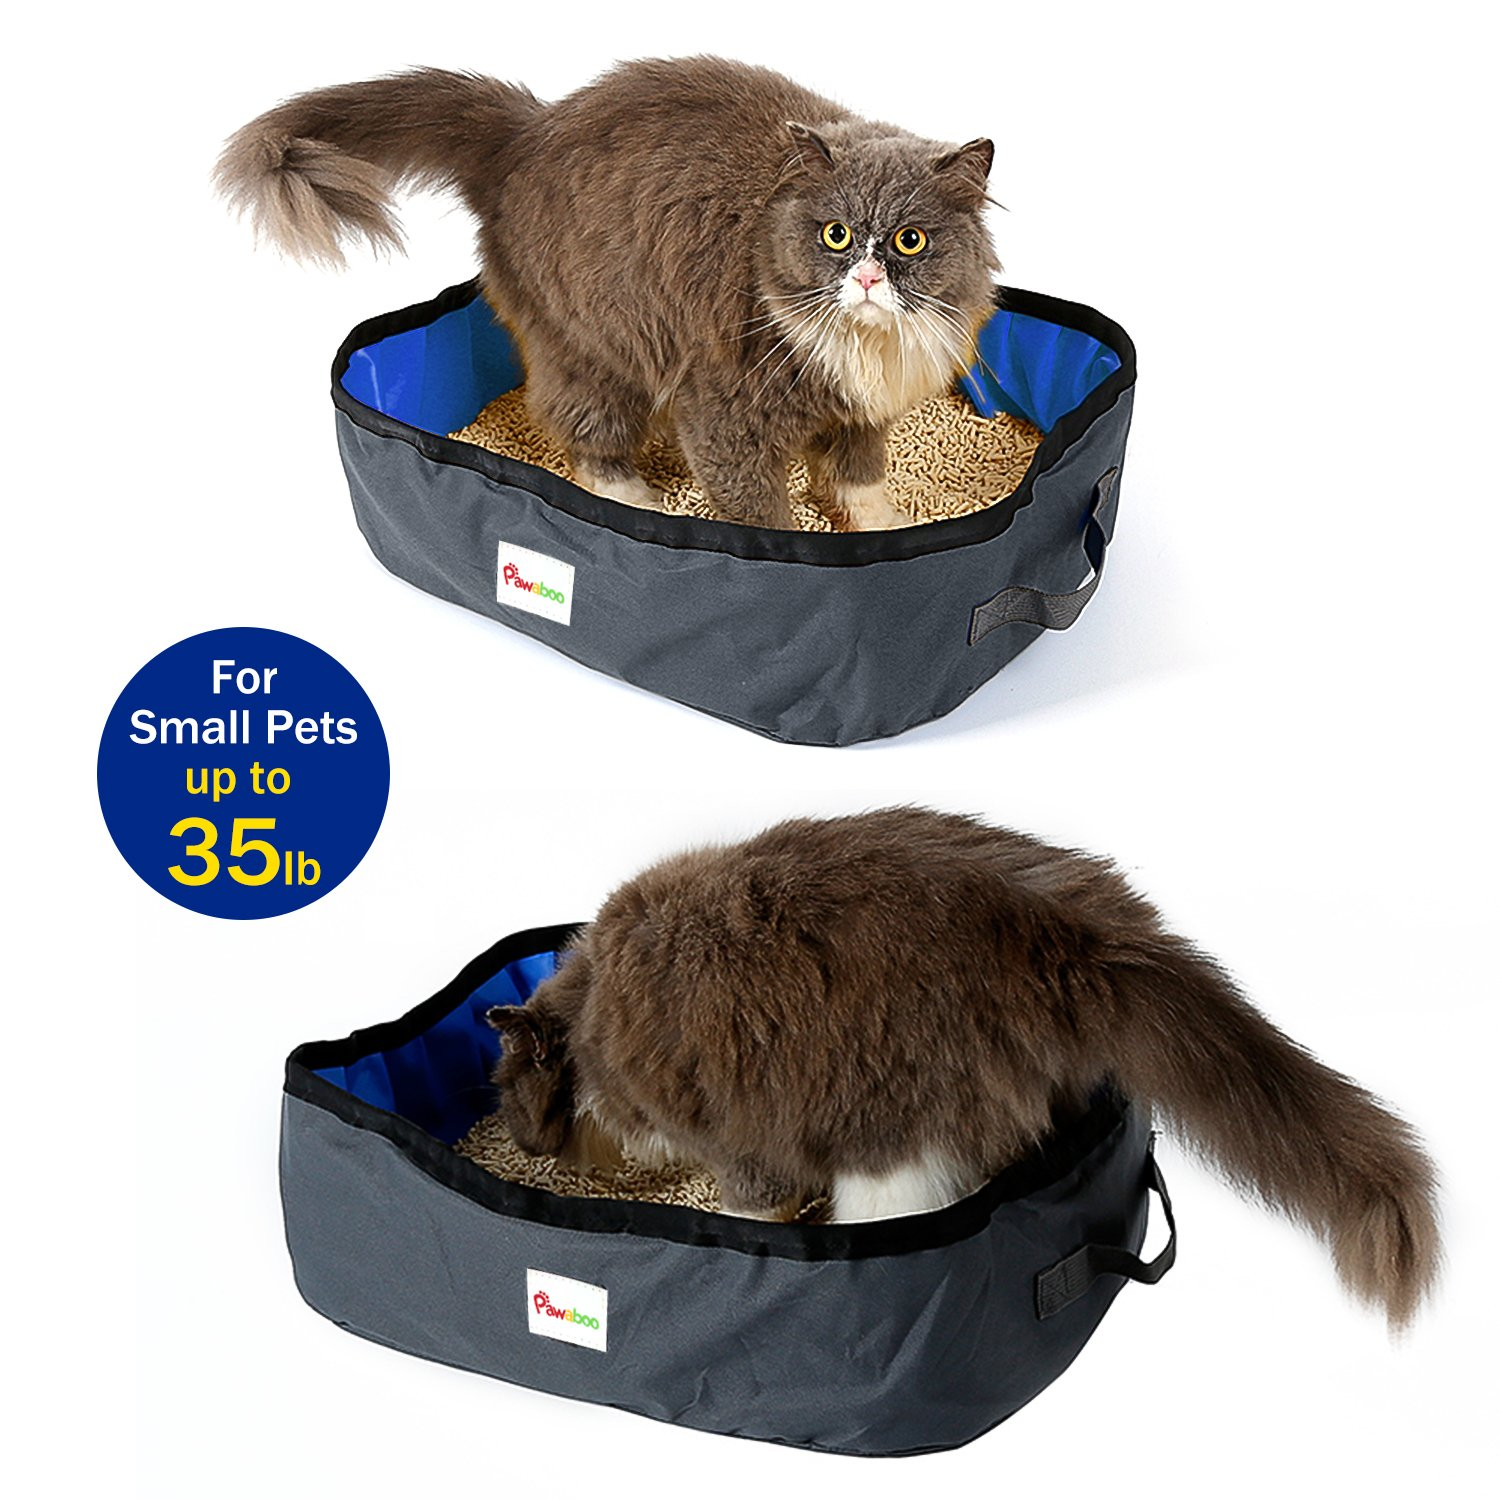 Pawaboo Caja de Arena Plegable para Gatos, 18 x 12 Inch Portable Waterproof Fabric Pet Cat Ketty Litter Pan Tray for Travel Camping Home Use, ...